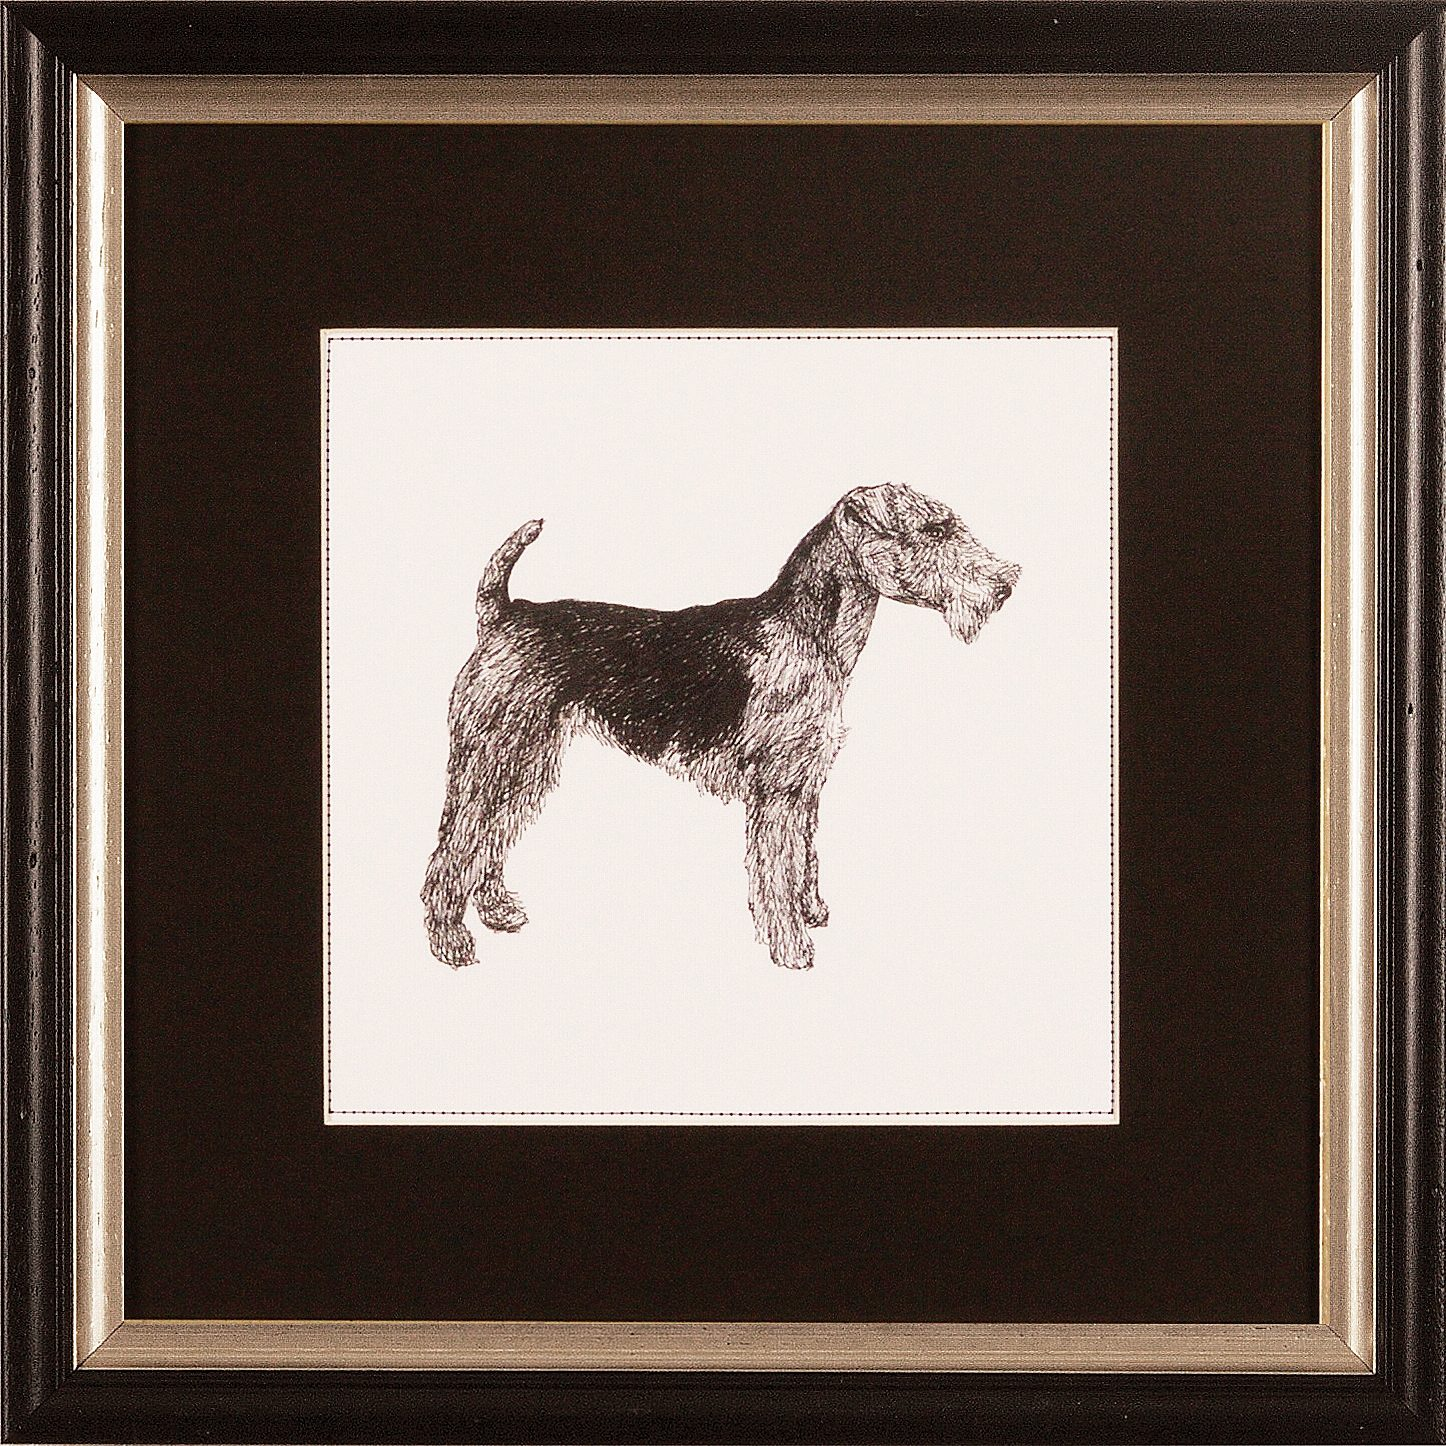 G&C gerahmter Kunstdruck »Meagher: Best in Show Airedale Terrier«, 30/30 cm